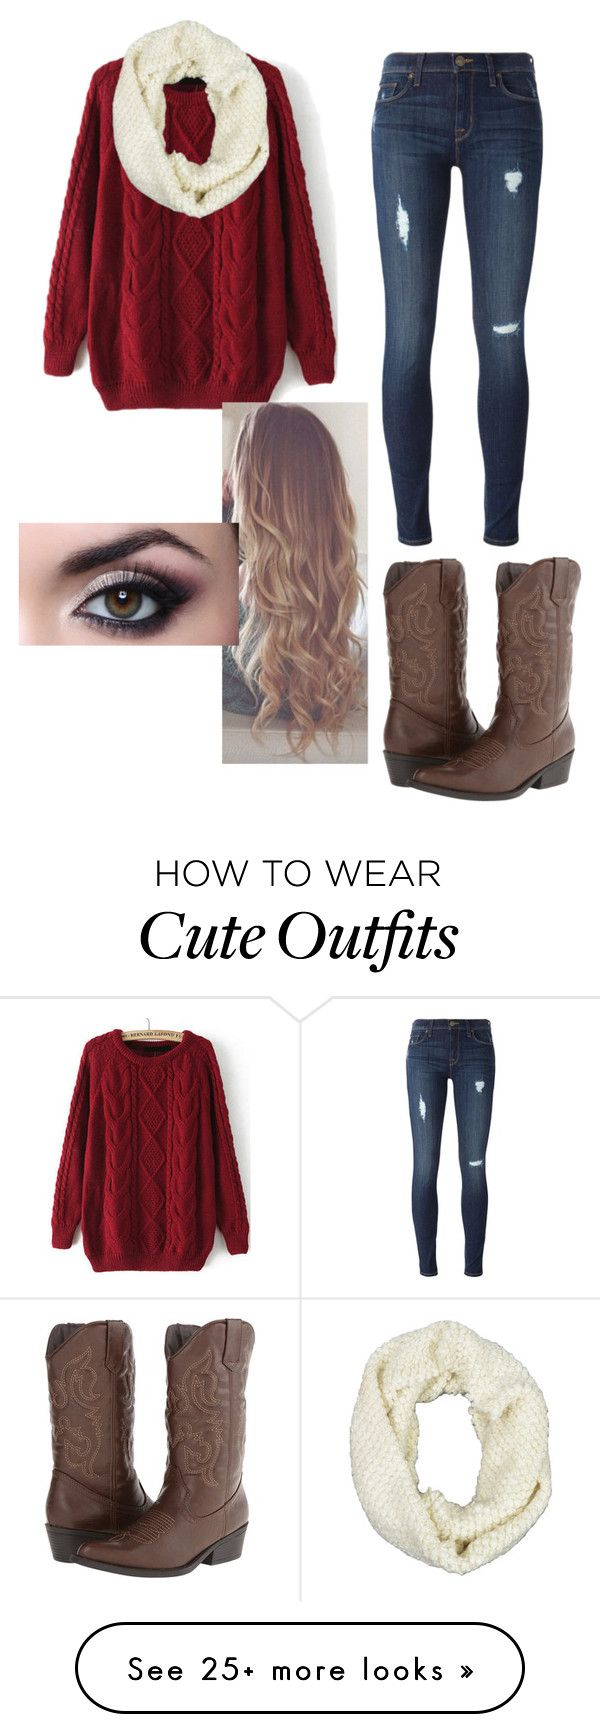 """Cute Christmas Outfit"" by hrharper on Polyvore featuring LA77, Hudson and Madden Girl"